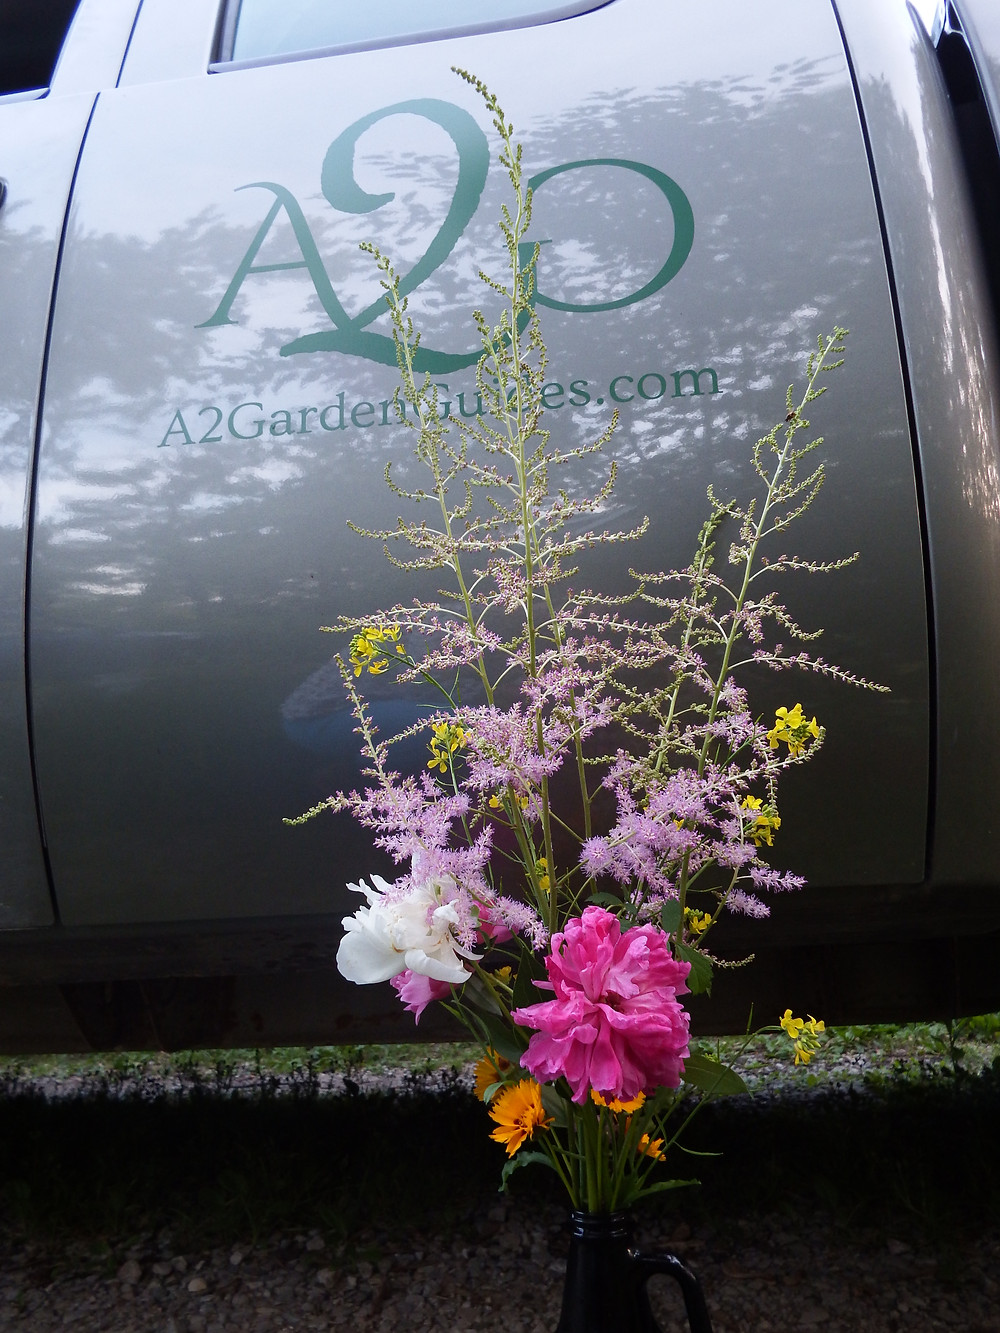 Bouquet and truck logo